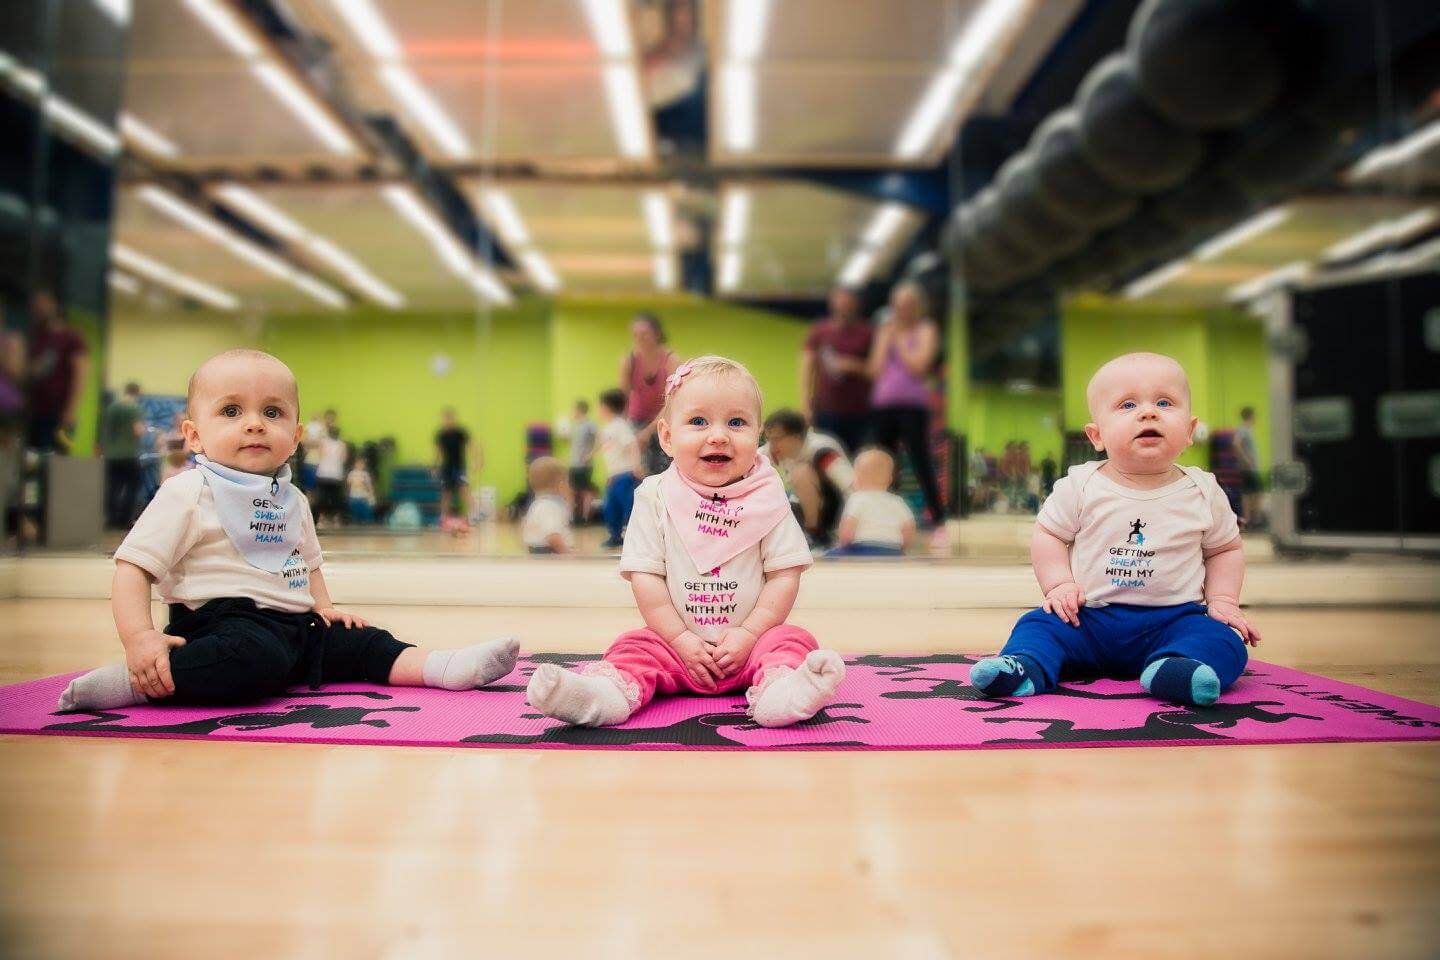 Babies on Yoga Mat | The Mustcard